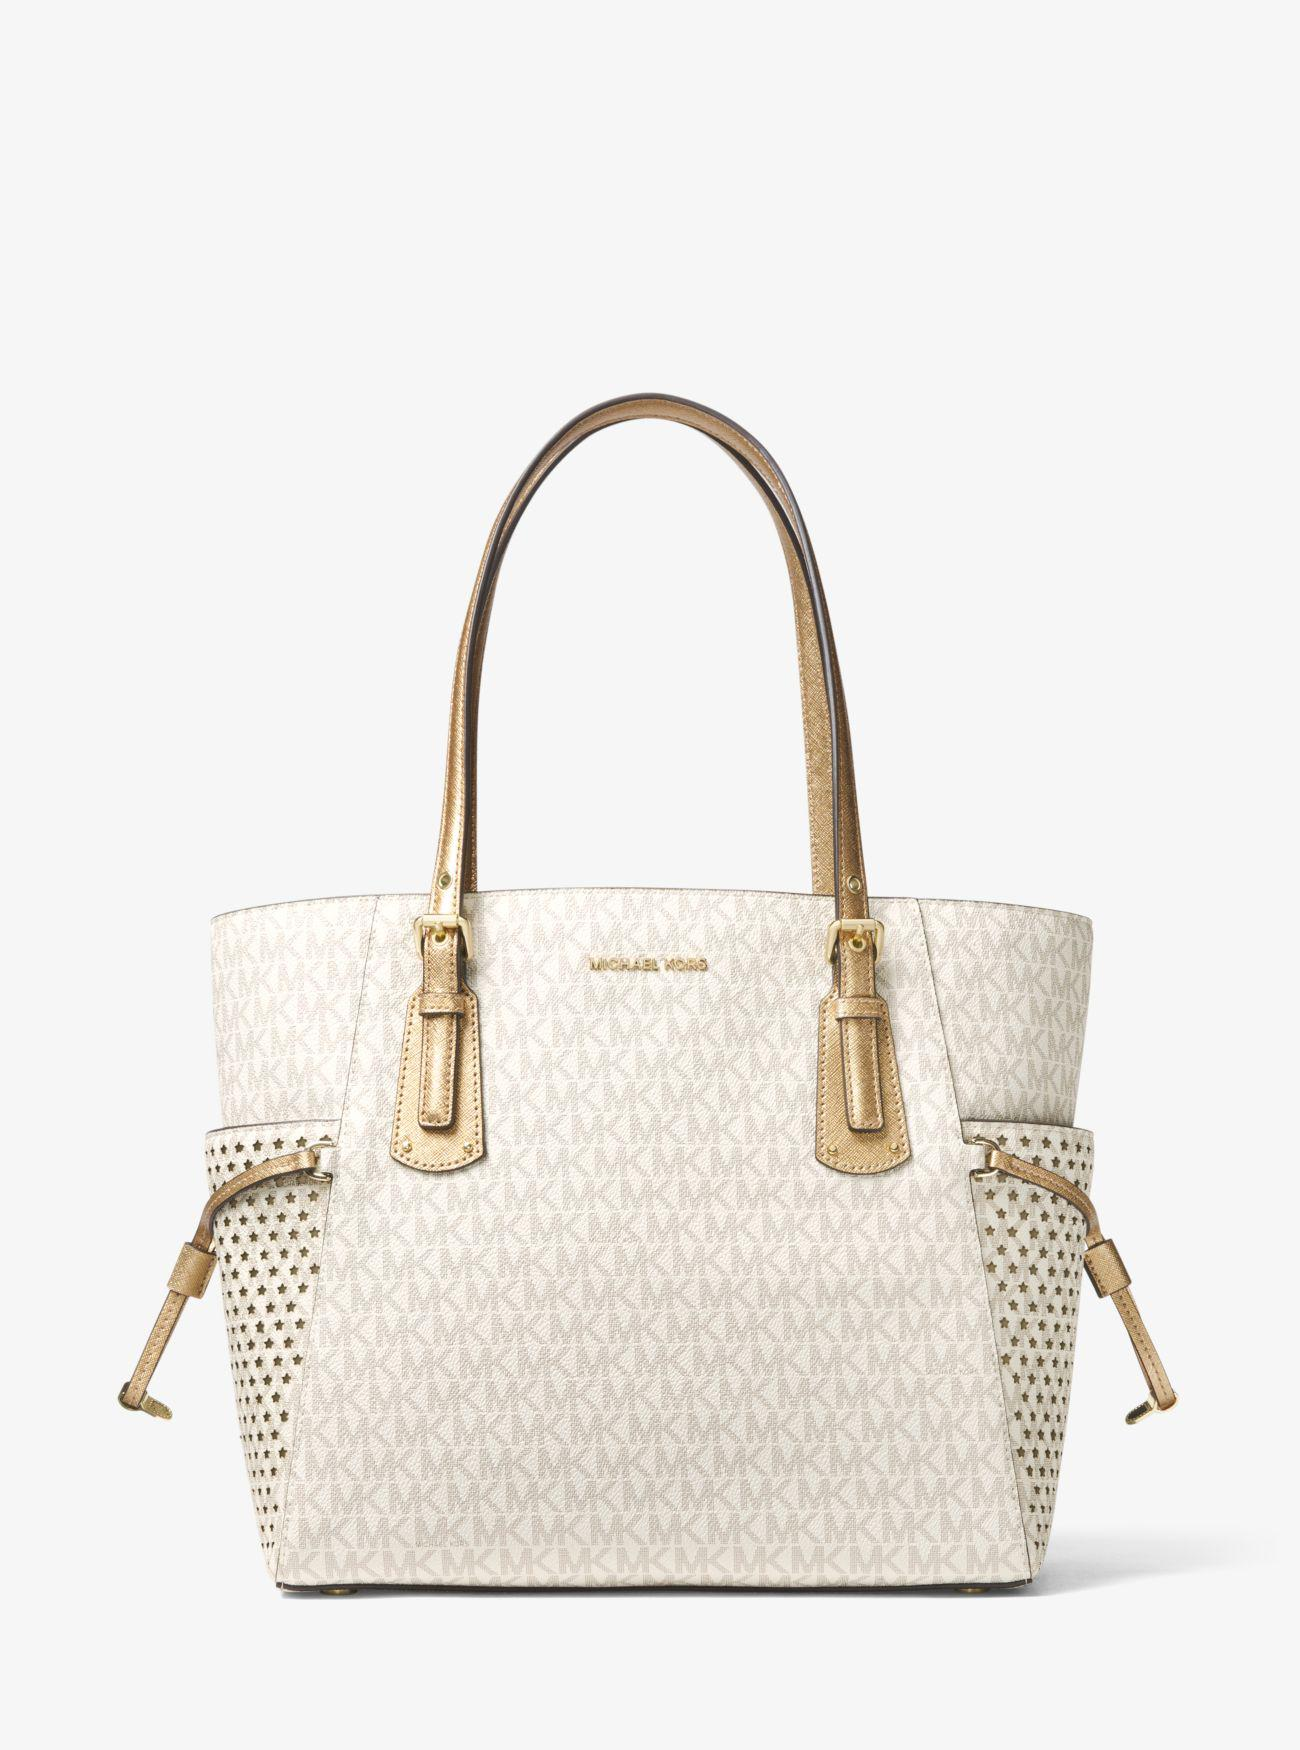 b5f9ae727e4f Michael Kors Logo Small Tote Bag   Stanford Center for Opportunity ...